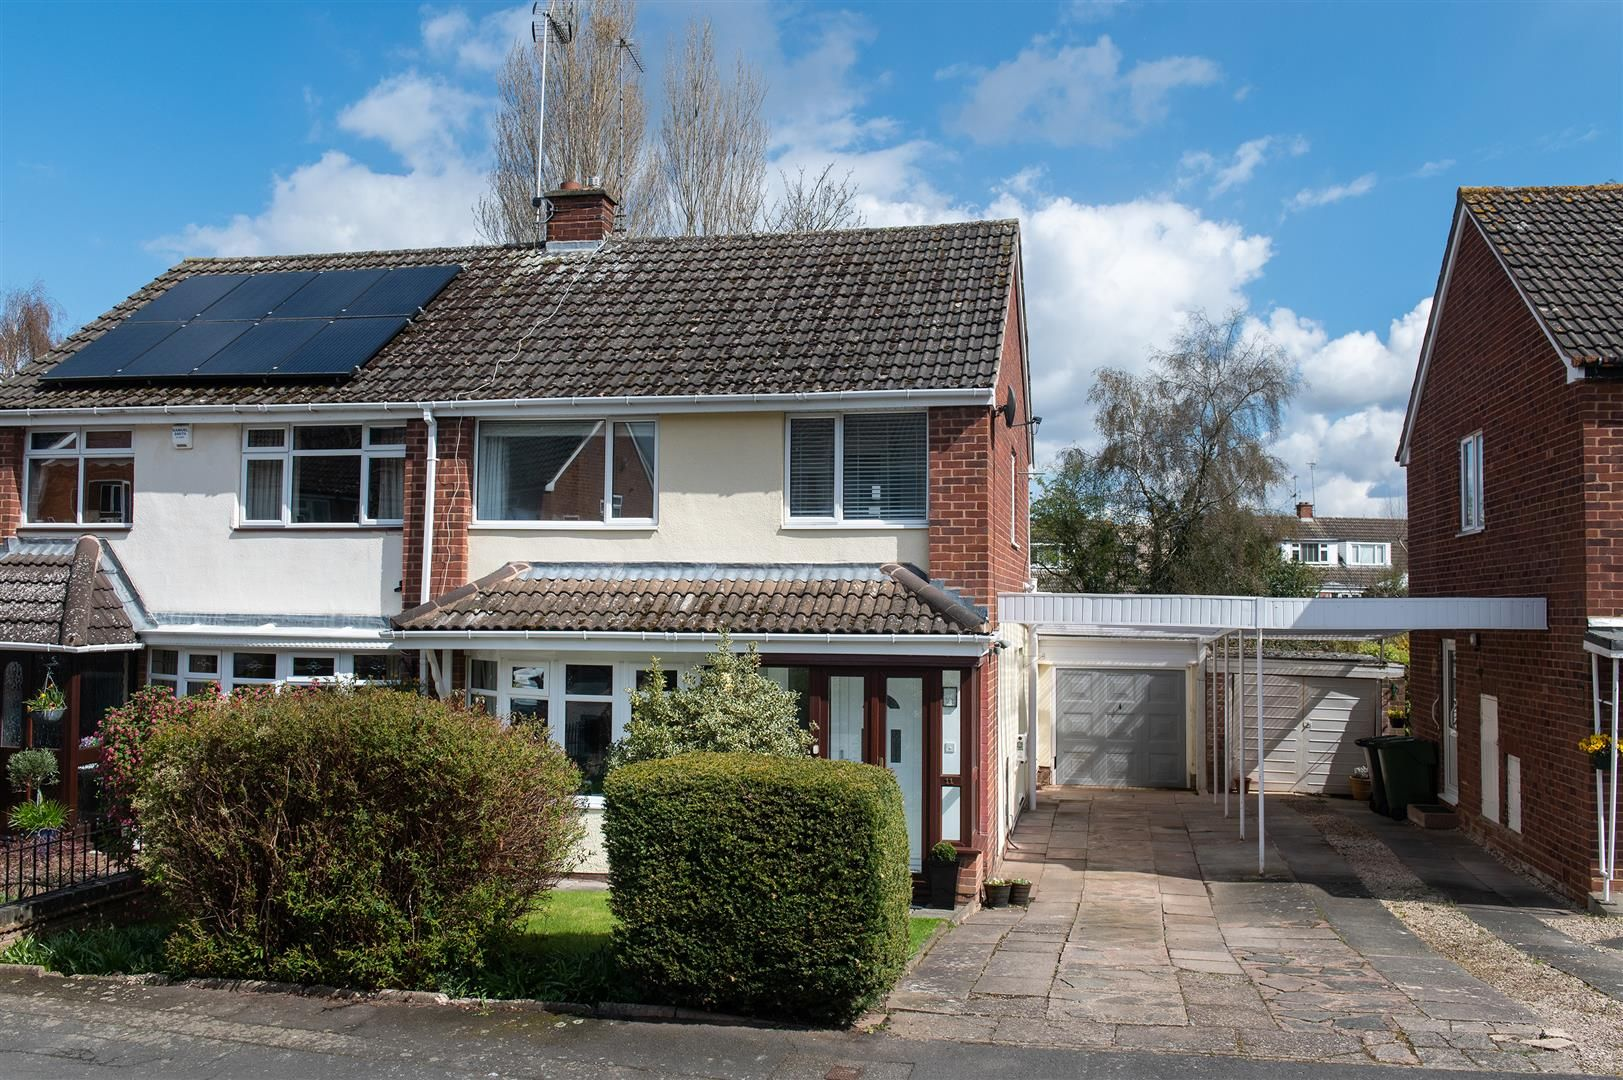 3 bed semi-detached for sale in Hagley 34